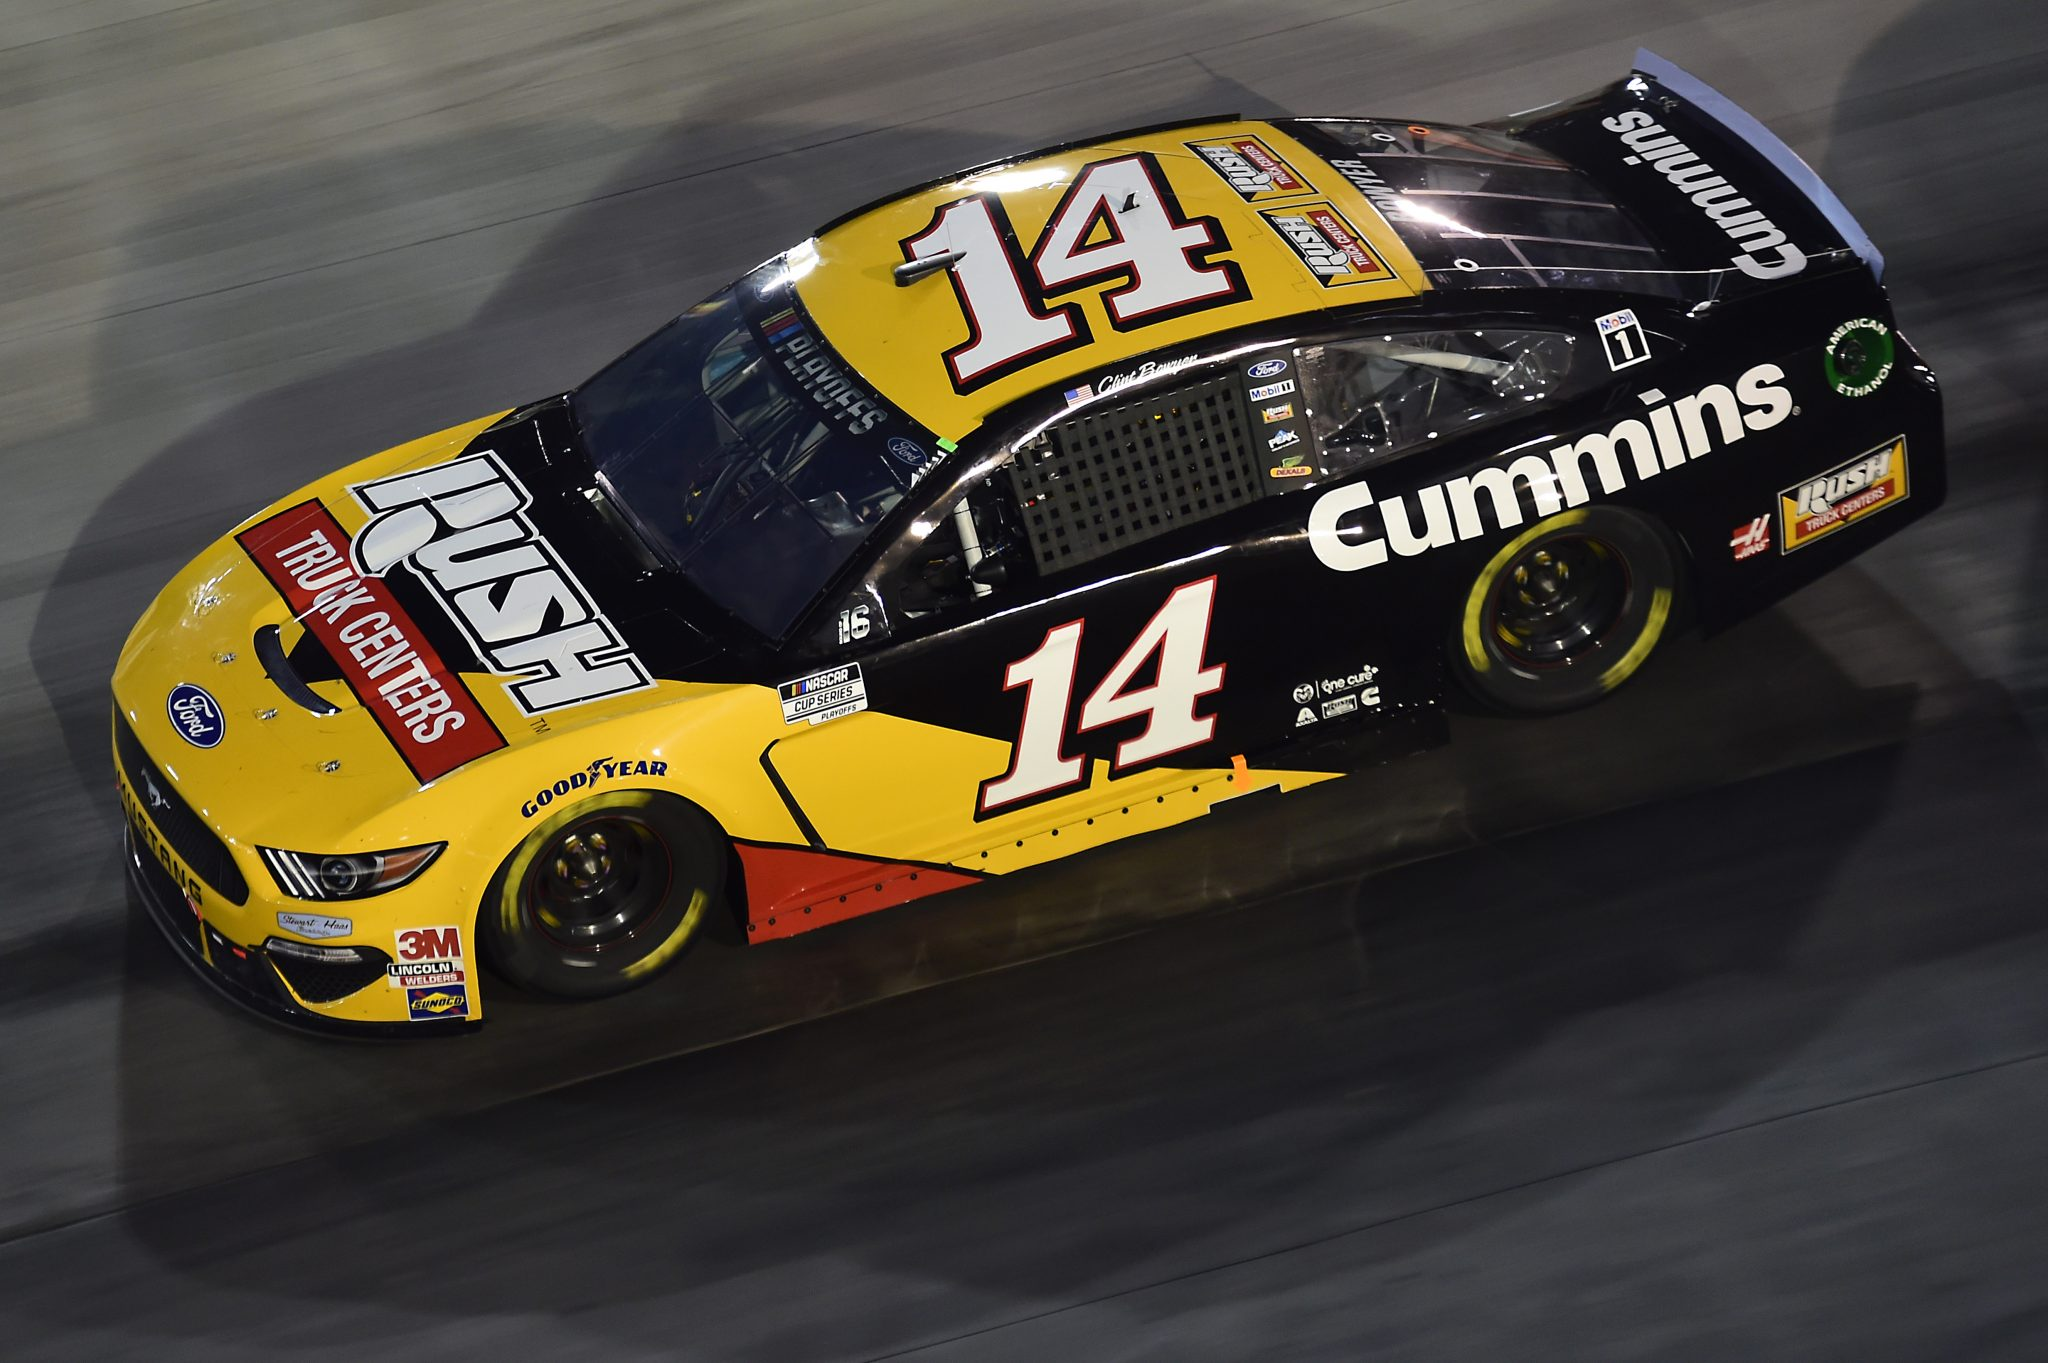 BRISTOL, TENNESSEE - SEPTEMBER 19: Clint Bowyer, driver of the #14 Rush Truck Centers/Cummins Ford, drives during the NASCAR Cup Series Bass Pro Shops Night Race at Bristol Motor Speedway on September 19, 2020 in Bristol, Tennessee. (Photo by Jared C. Tilton/Getty Images) | Getty Images